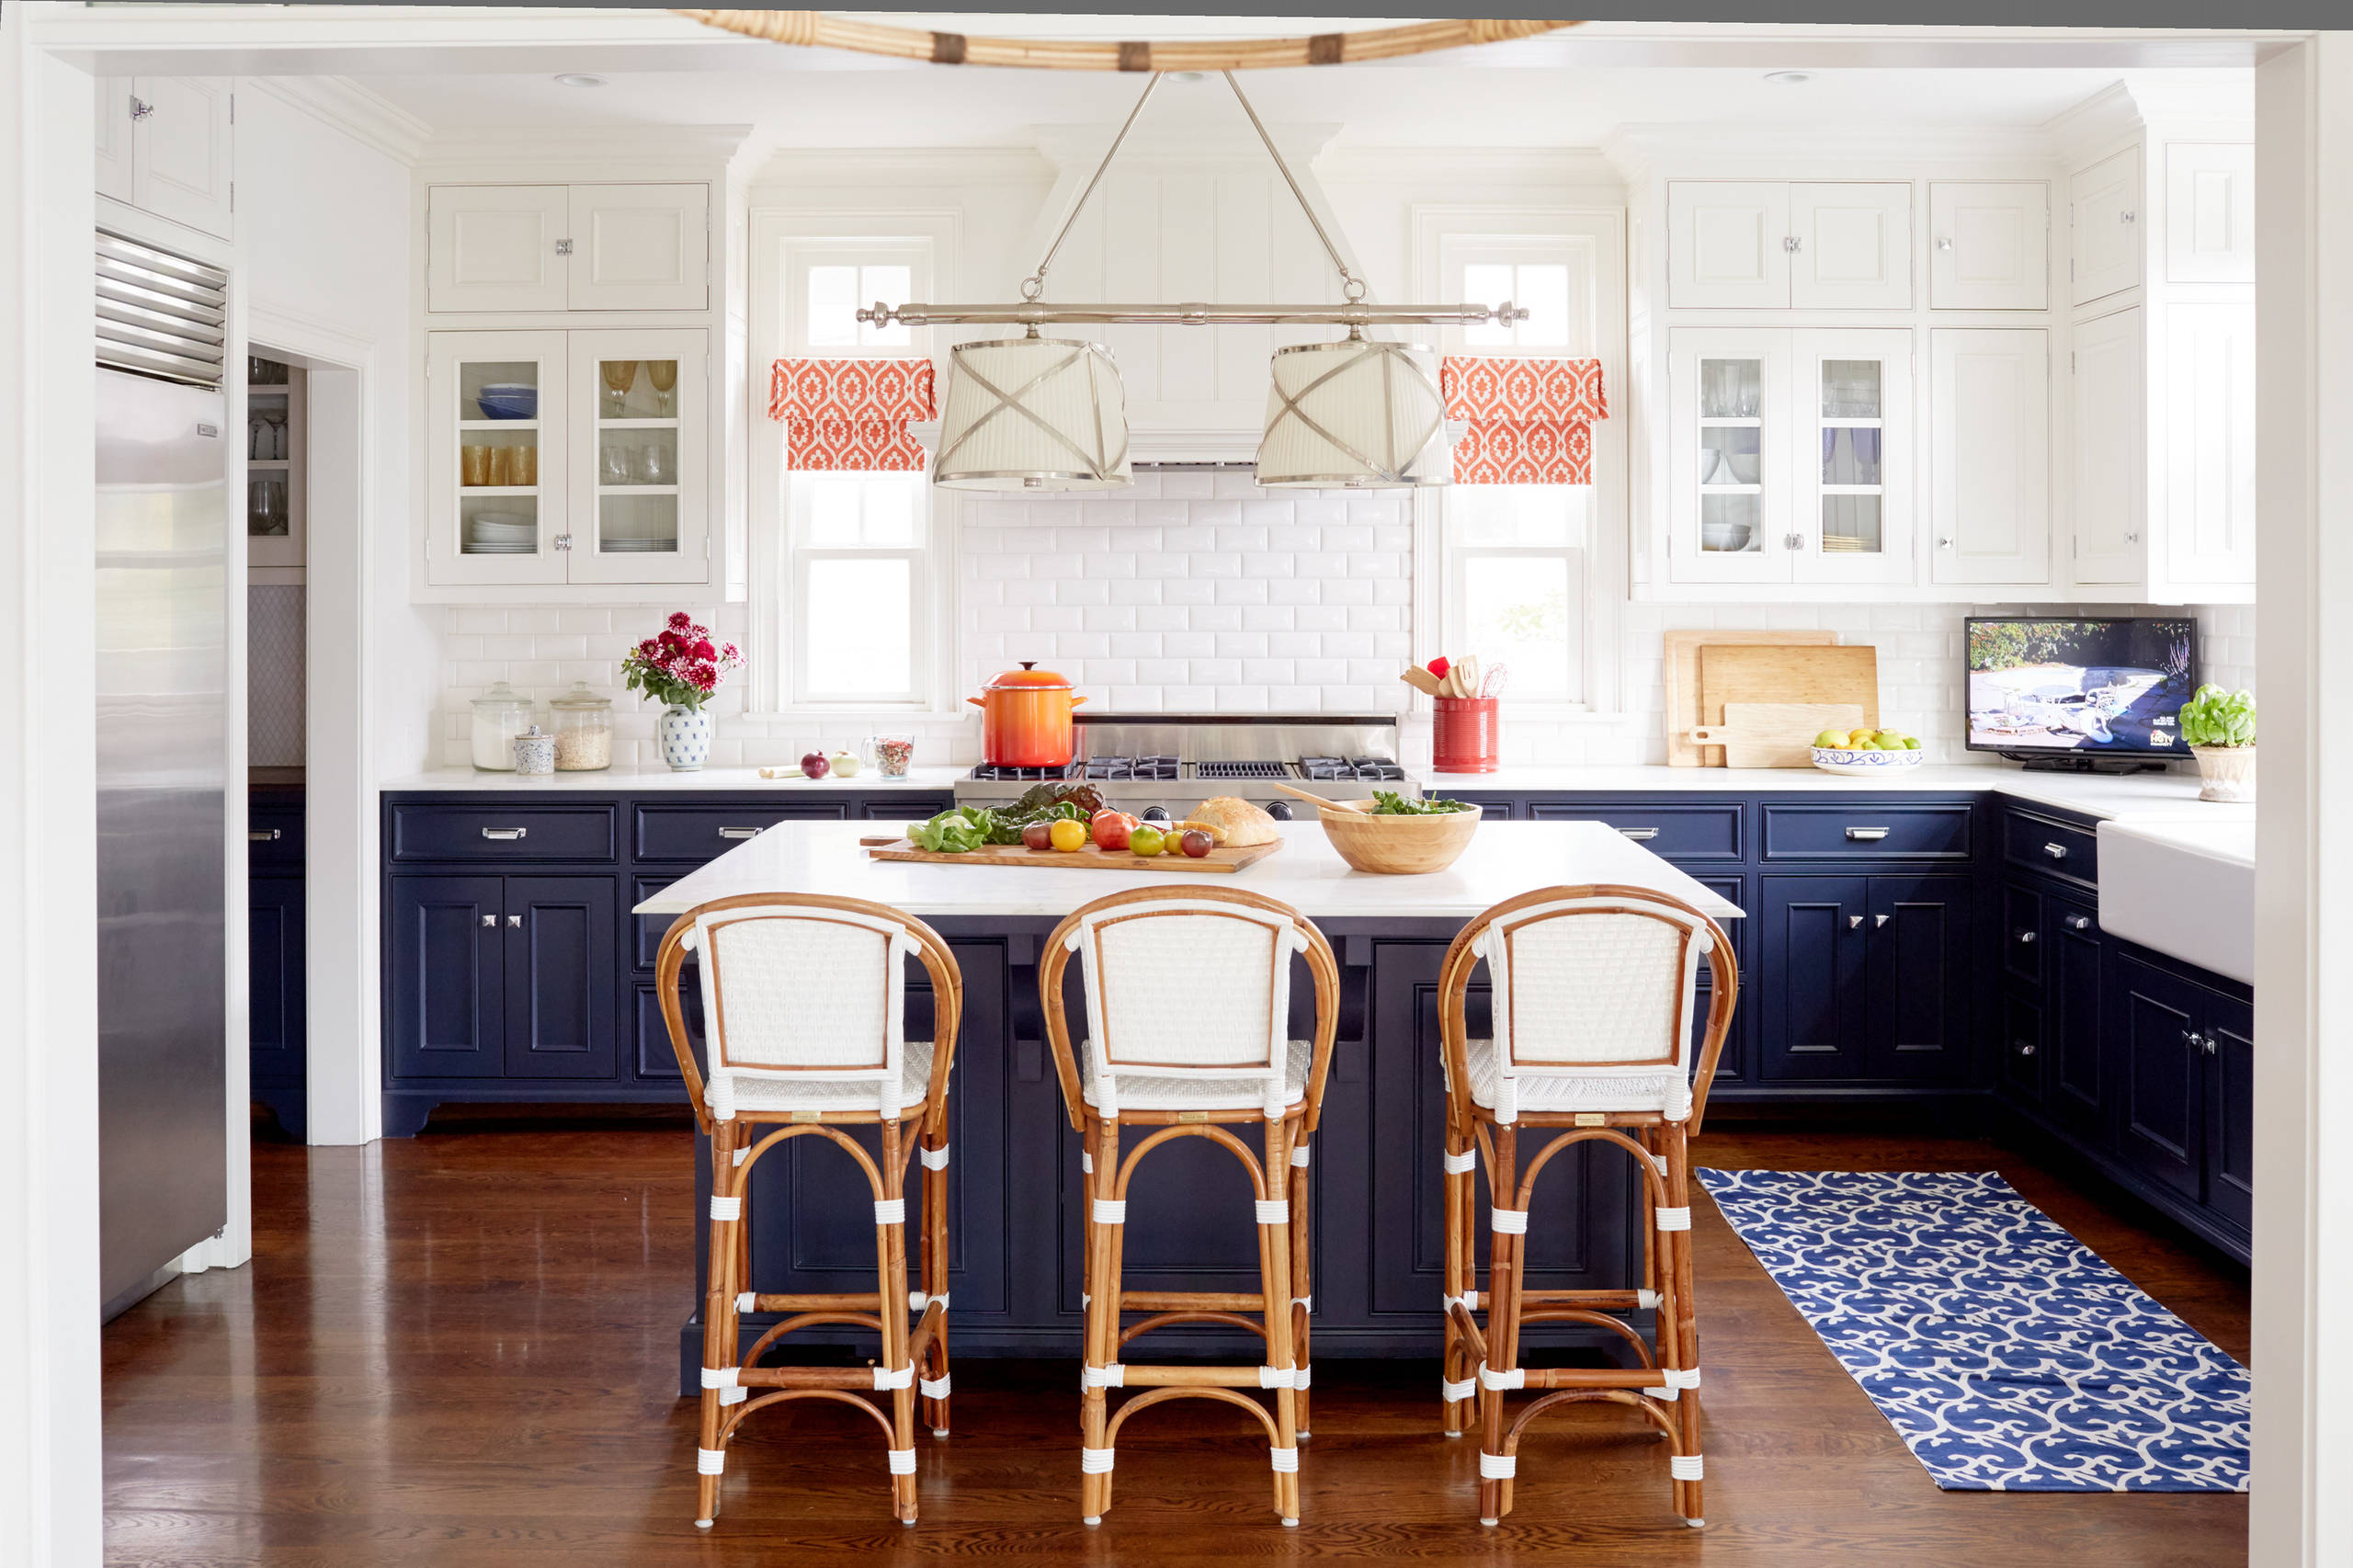 Blue and white kitchen Beach Style Kitchen beach home blue and red casual elegance counter stools lanterns